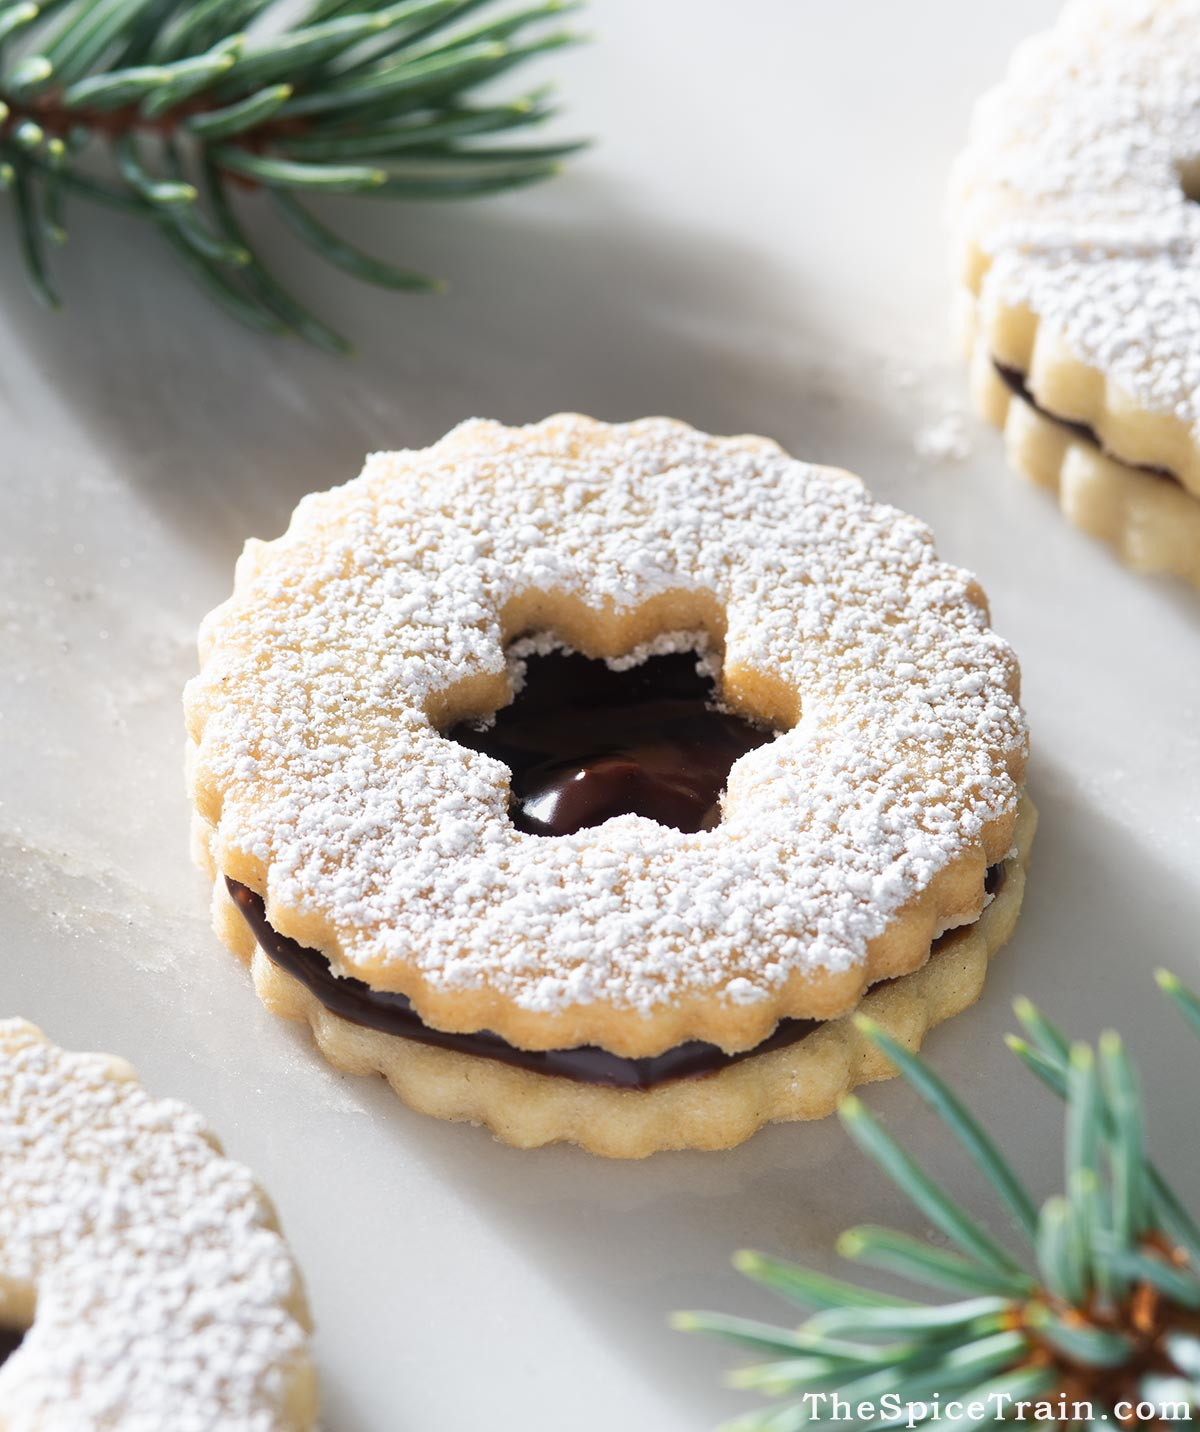 Closeup of a Linzer cookie filled with chocolate ganache.